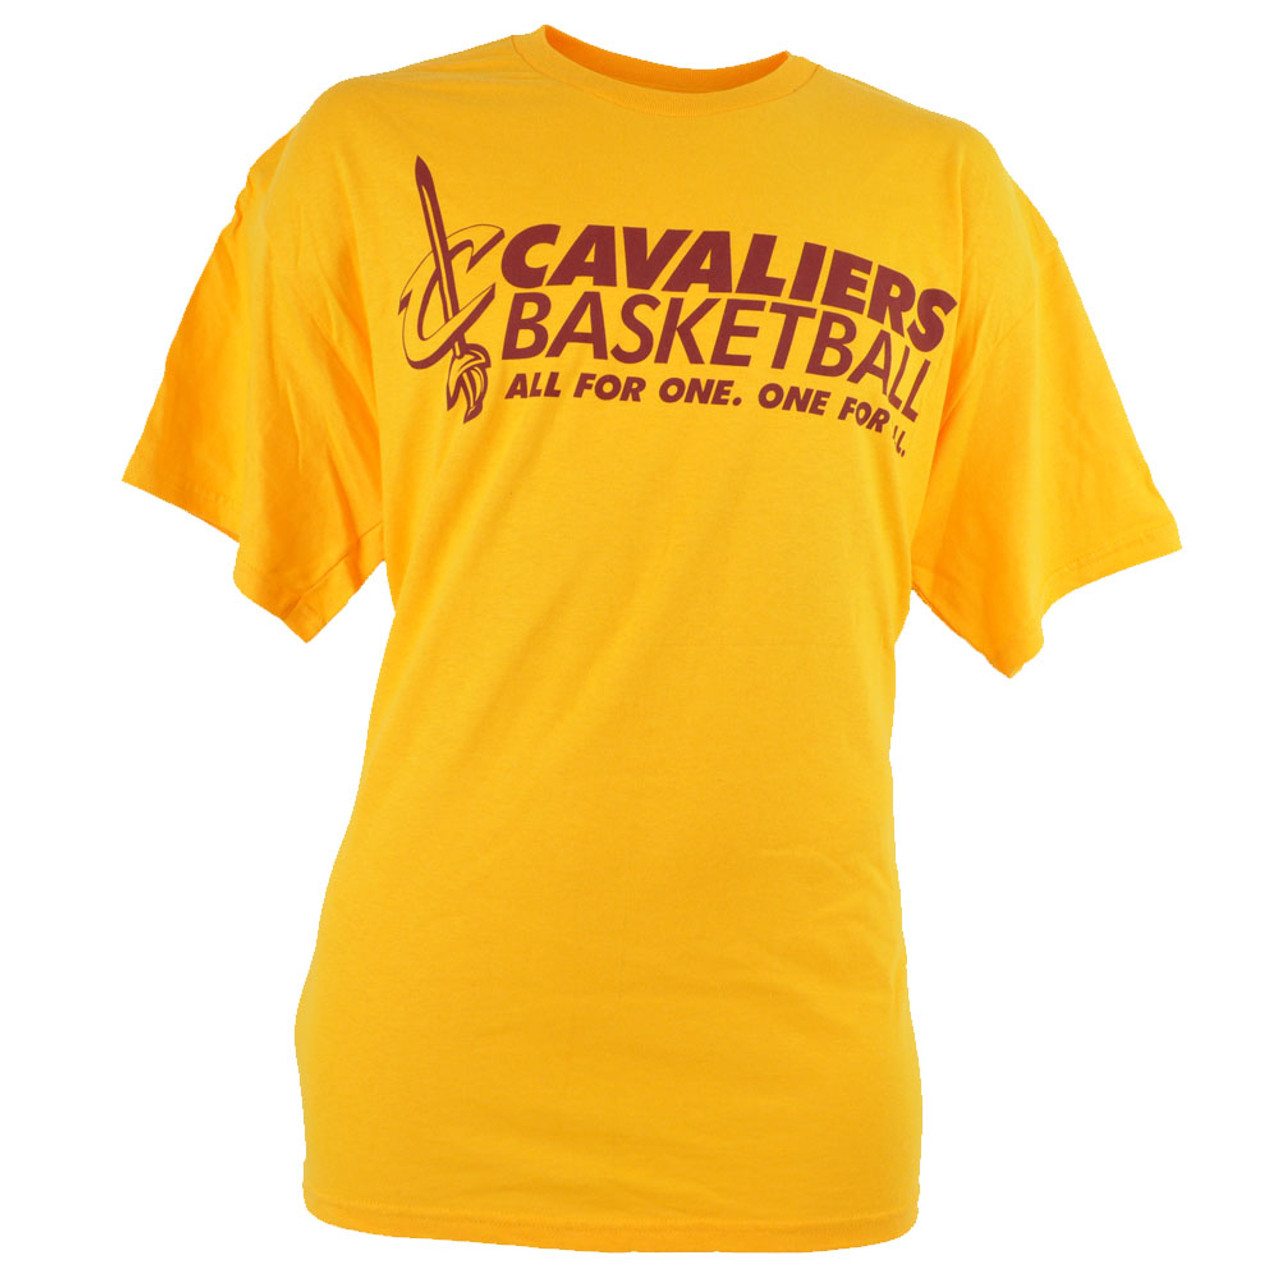 ffd4ff440 NBA Cleveland Cavaliers Cavs Basketball All For One Yellow Maroon Tshirt -  Cap Store Online.com